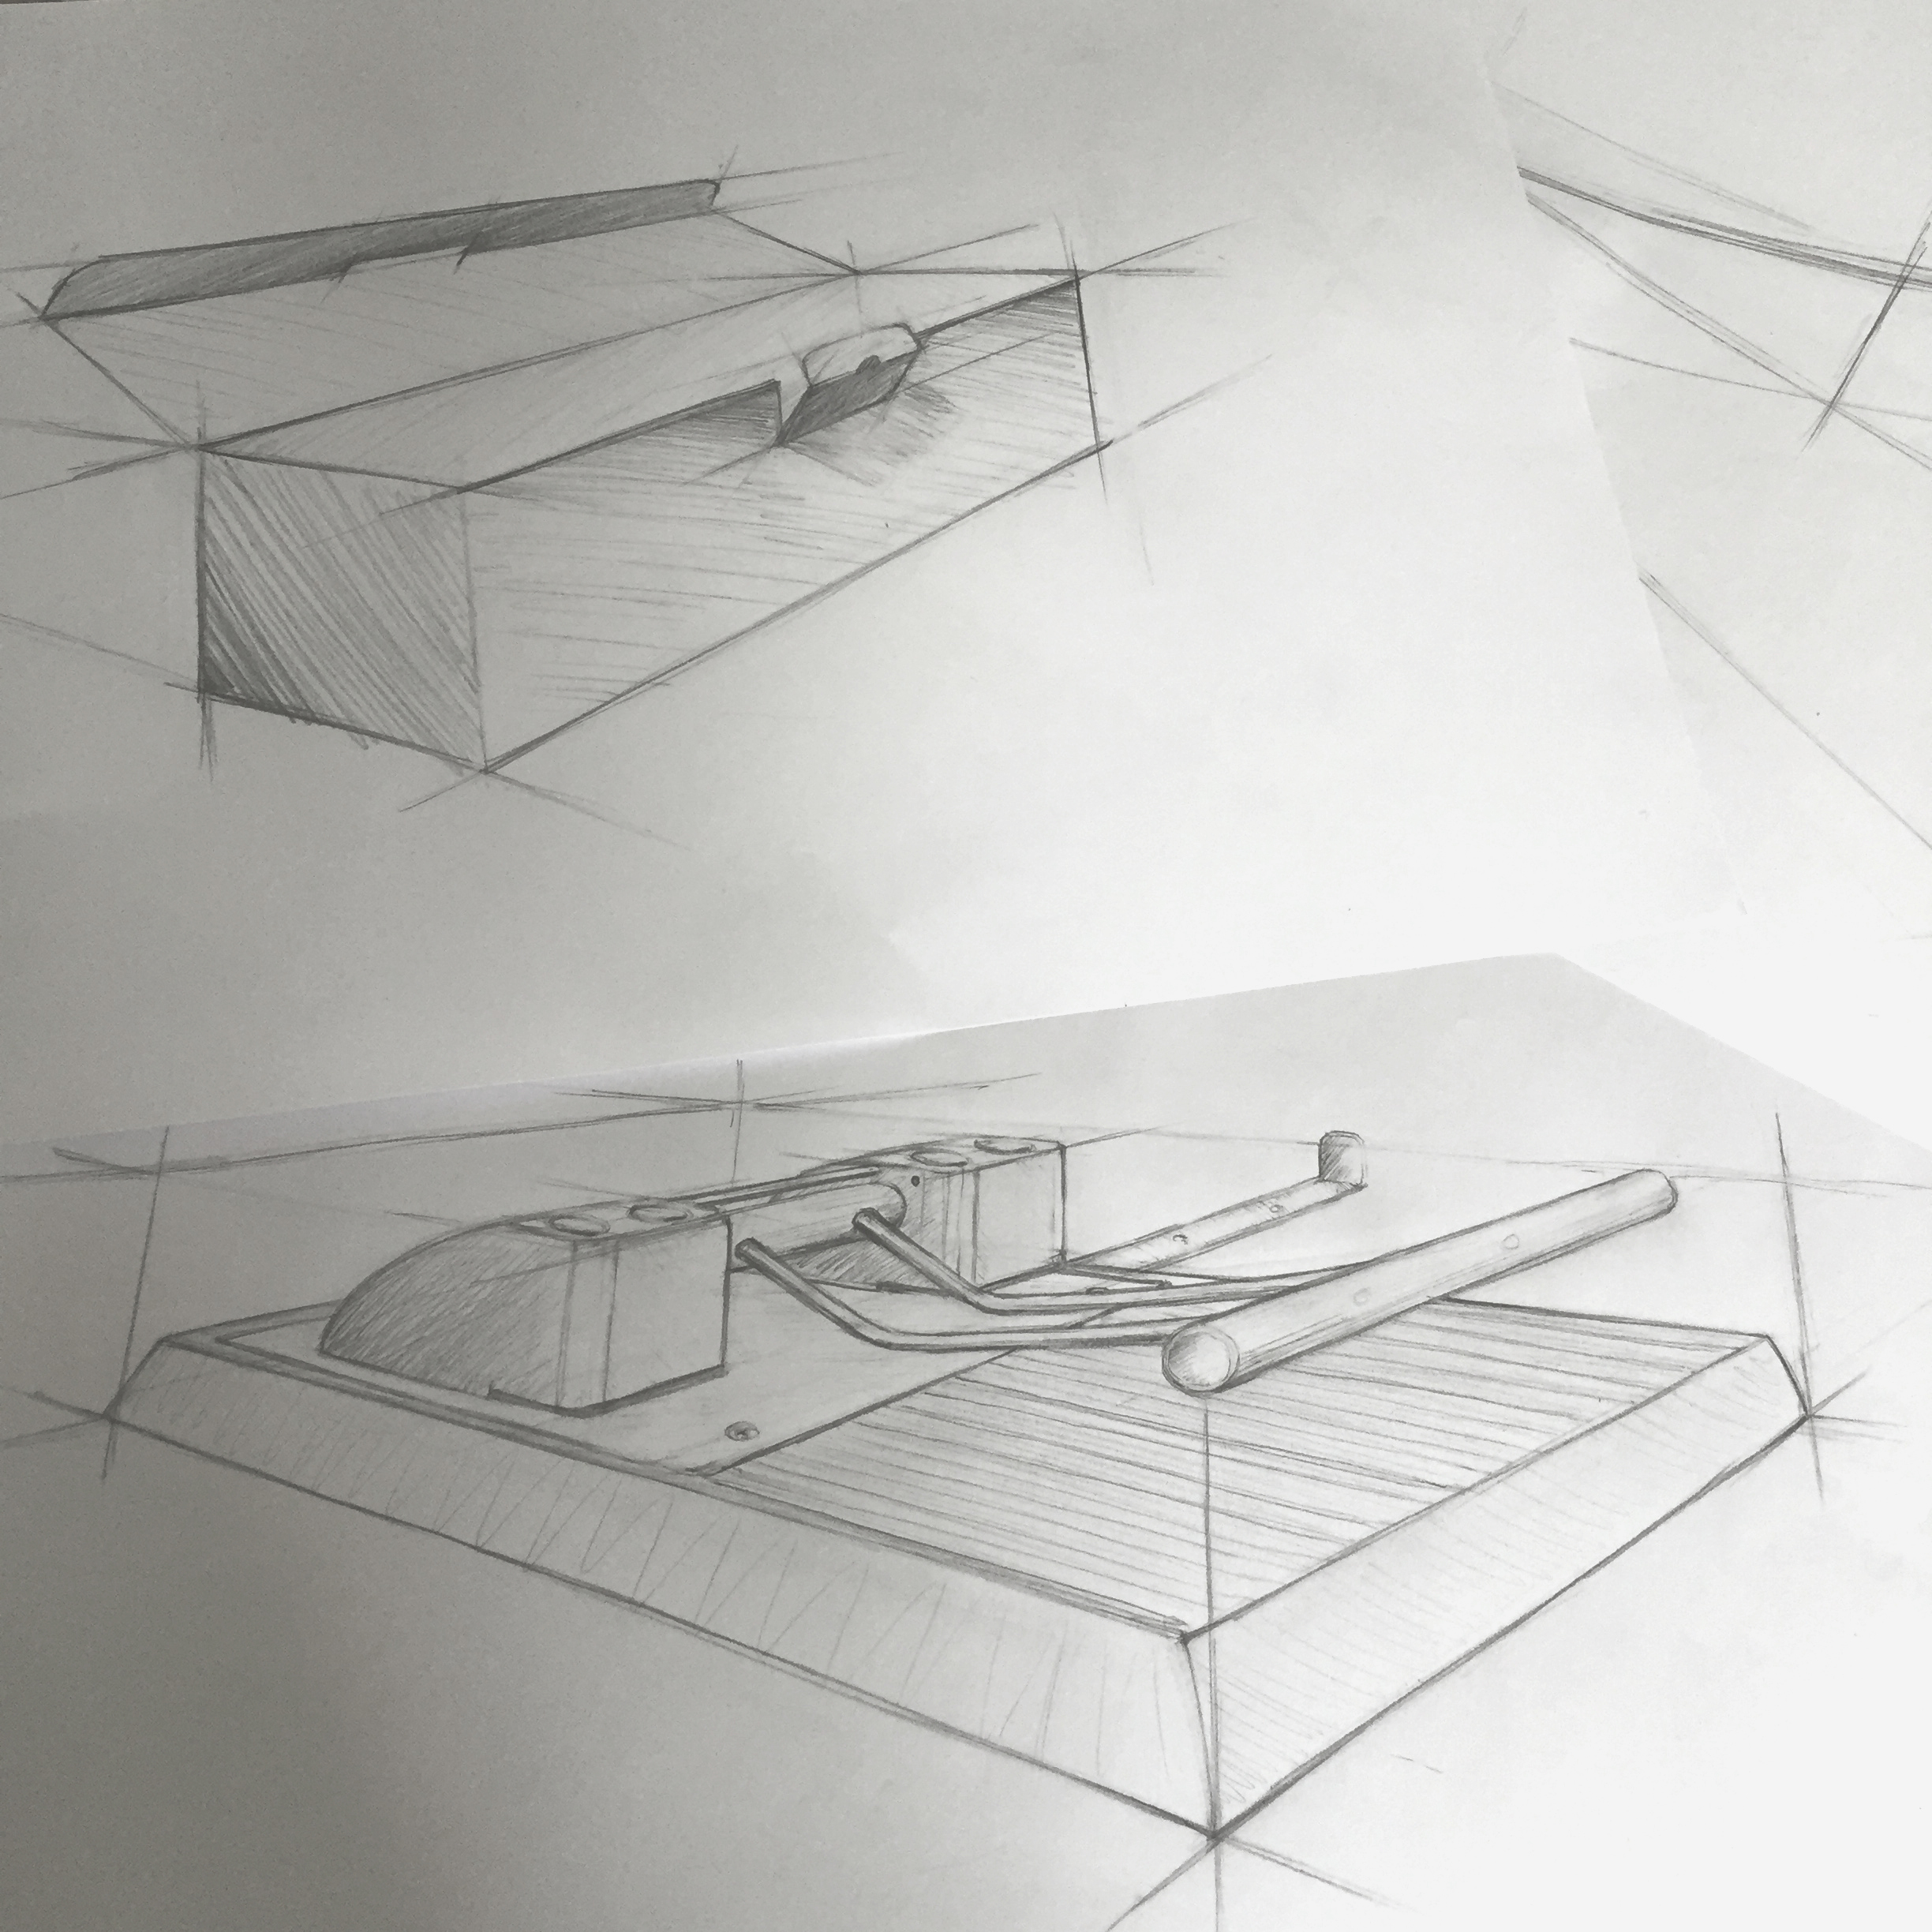 Technical drawings in perspective by Sebastian Galo